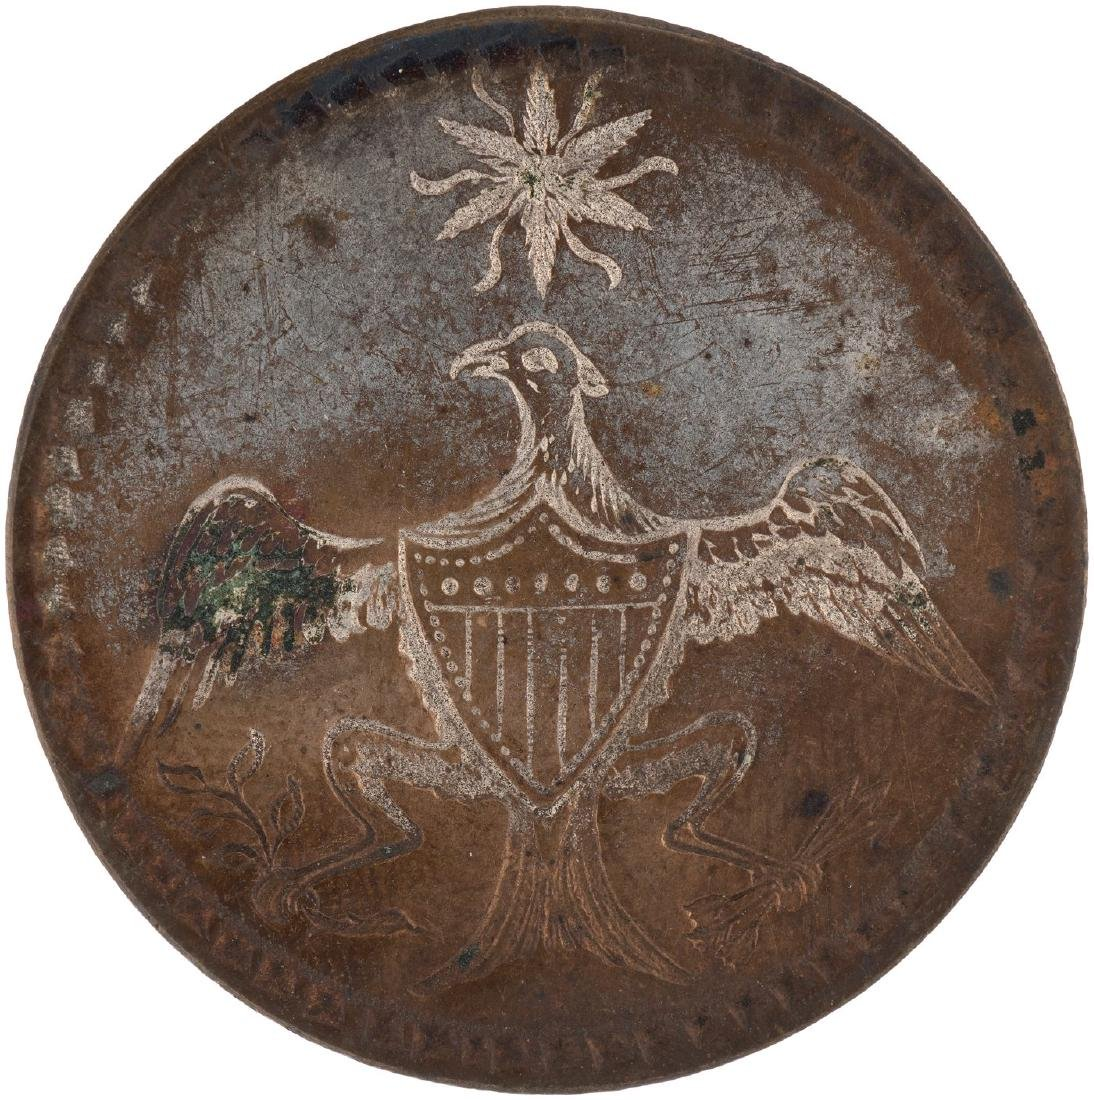 WASHINGTON 1789 INAUGURAL SILVERED COPPER CLOTHING BUTTON WITH SHANK INTACT.